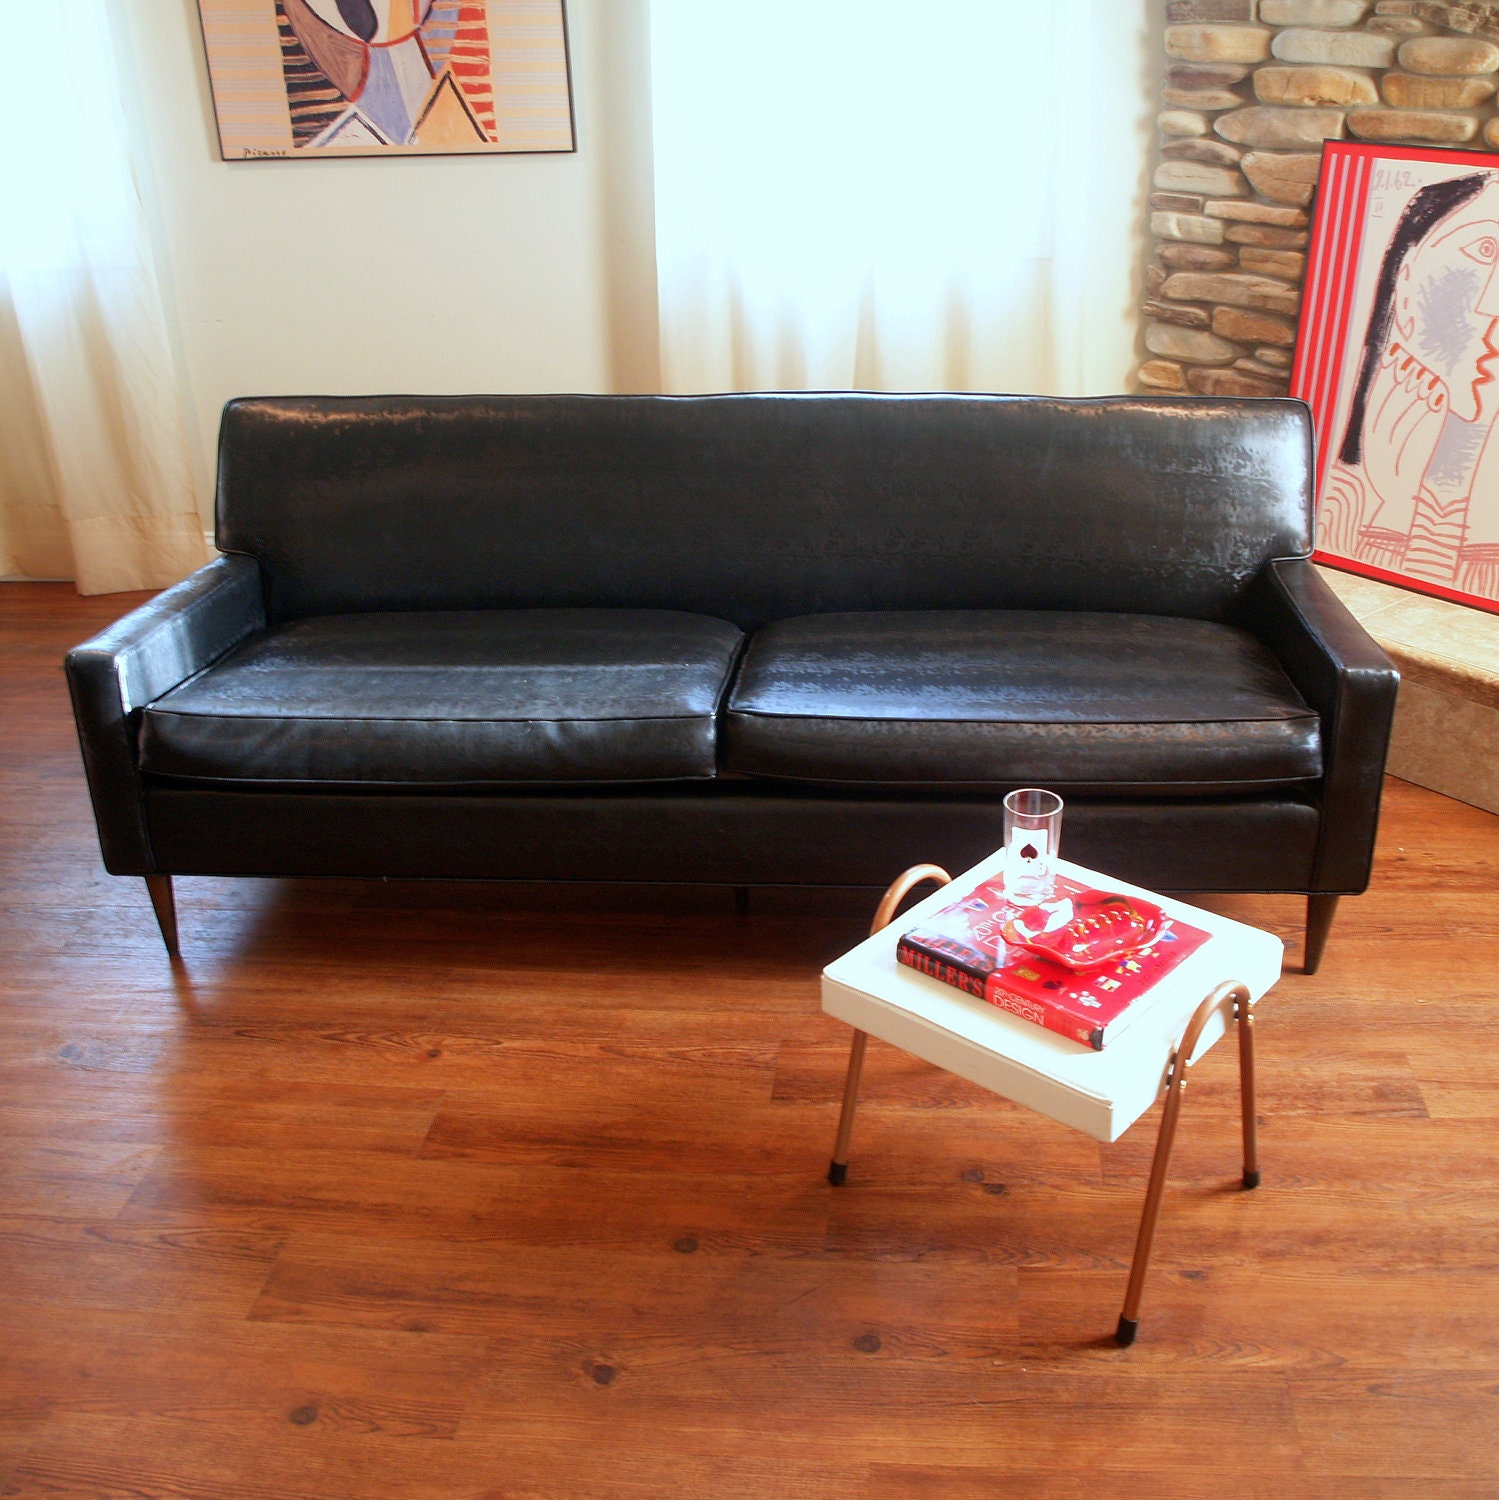 New Mid Century Modern Sofa: The Real Deal 1950s MID CENTURY MODERN Sofa By